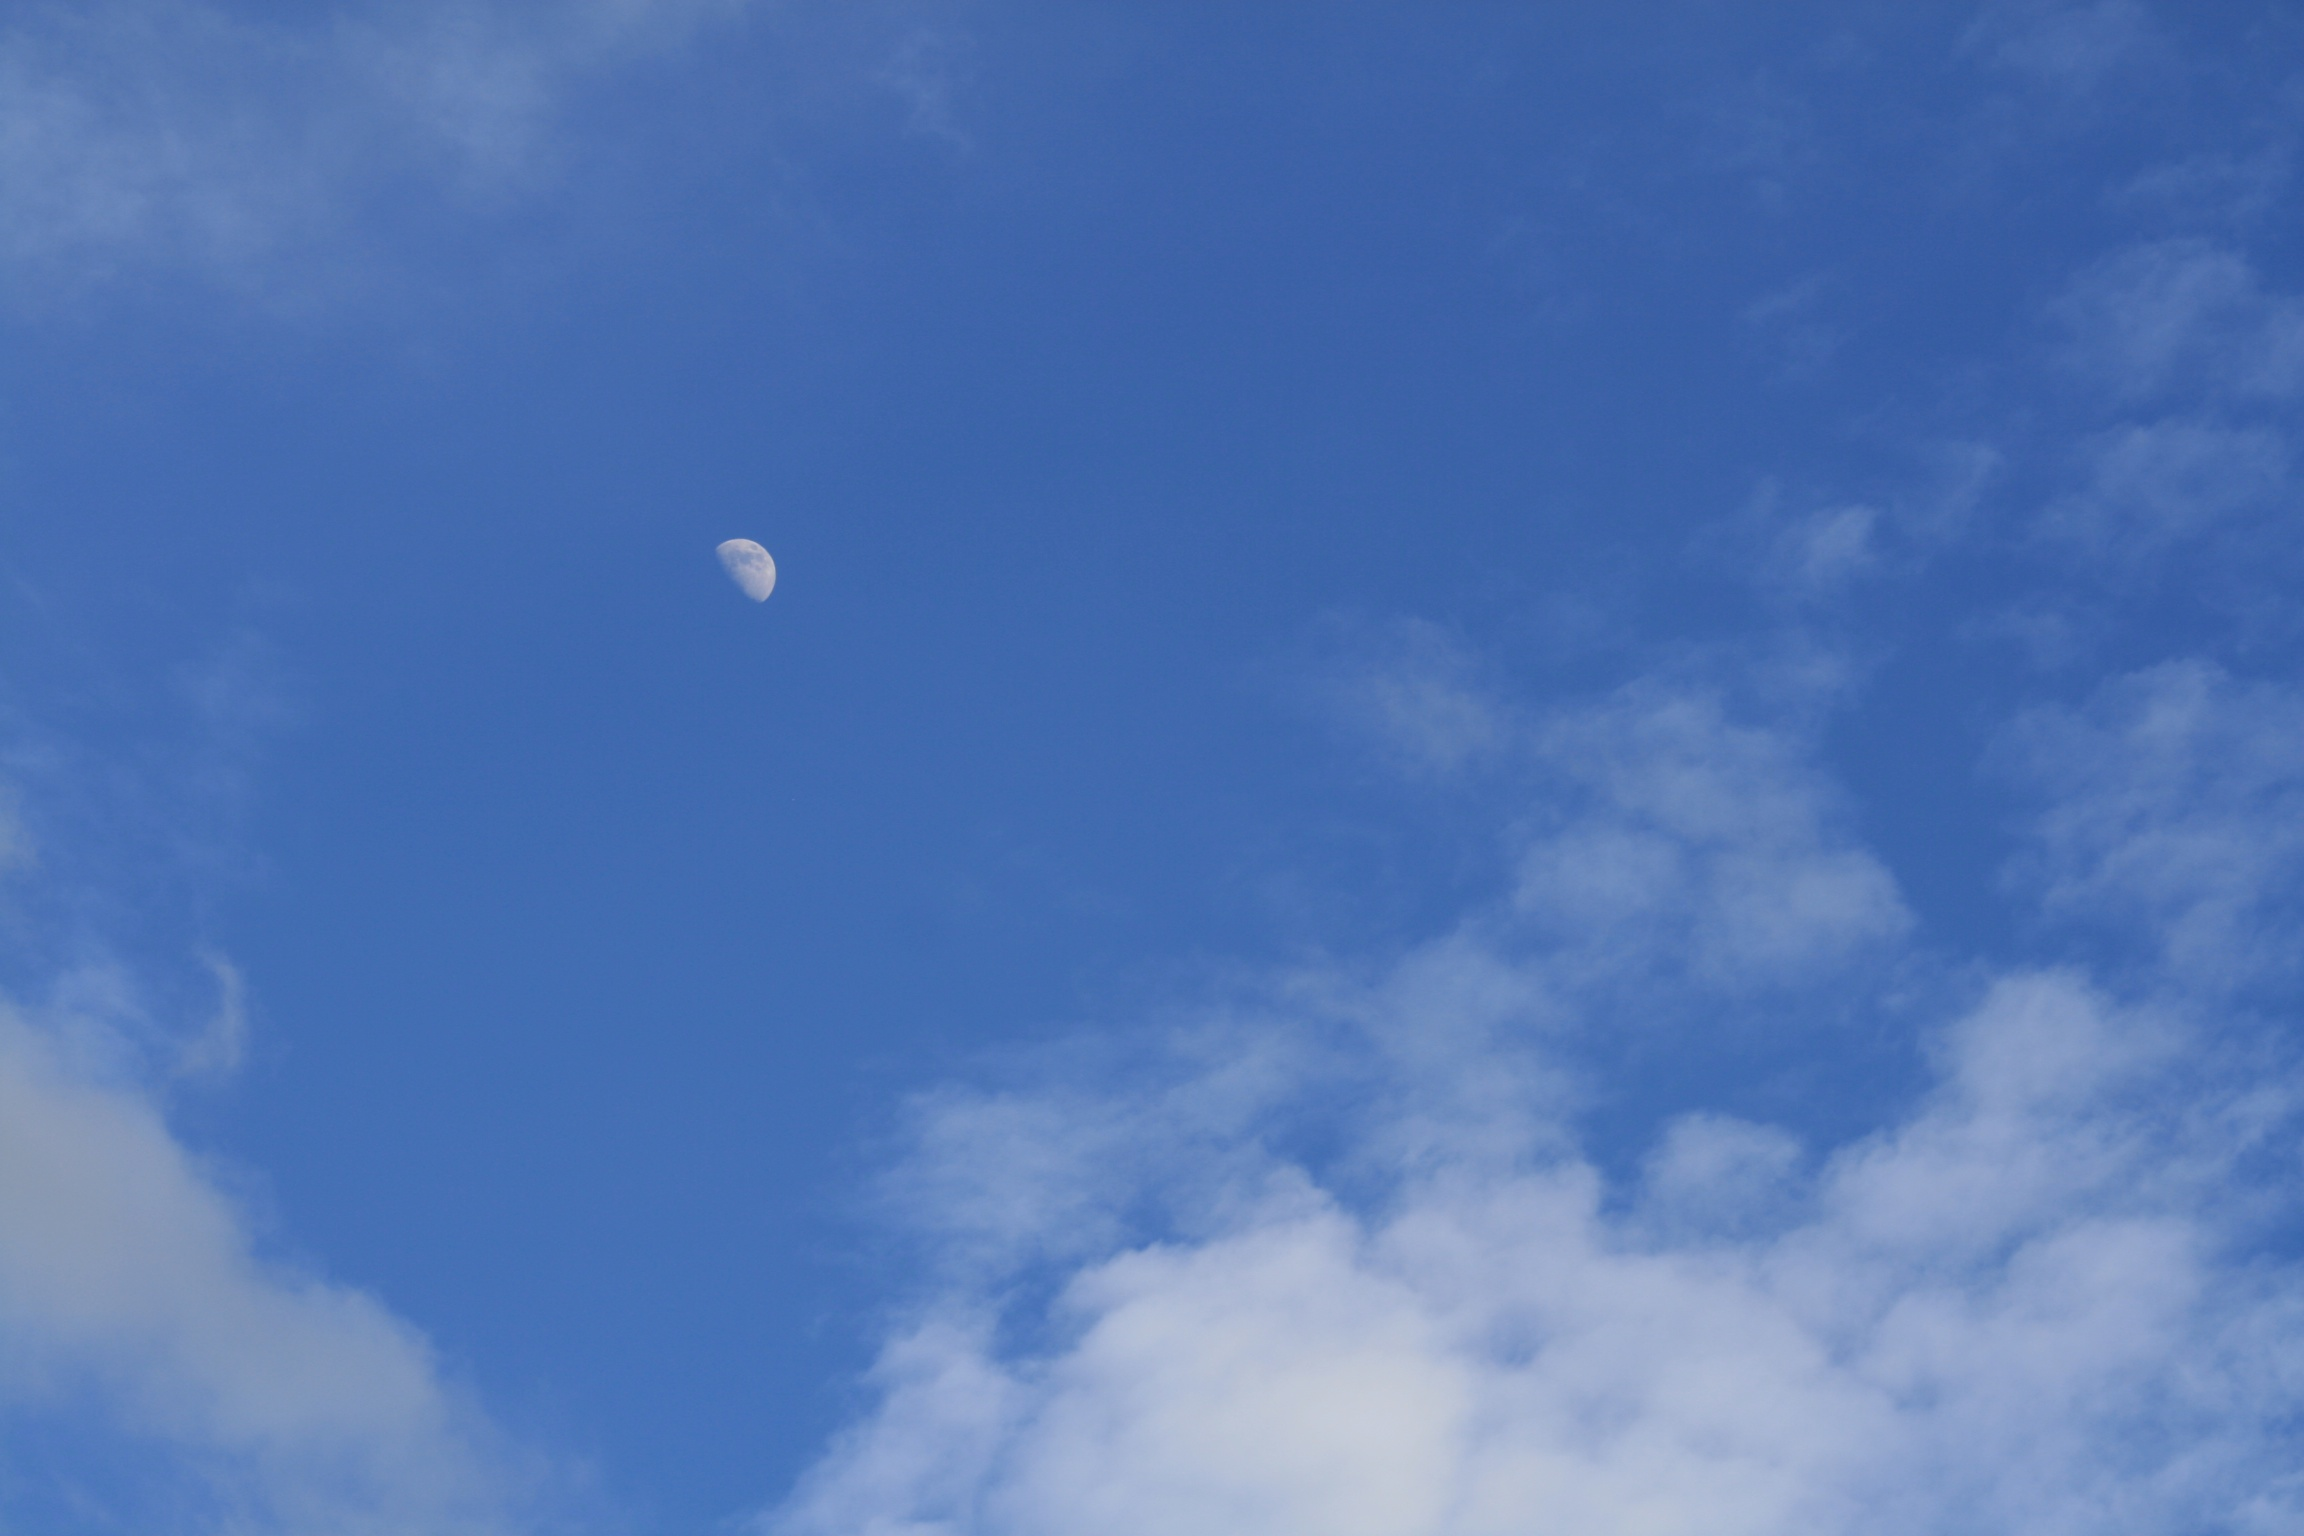 Big blue sky with moon and thin cloud.